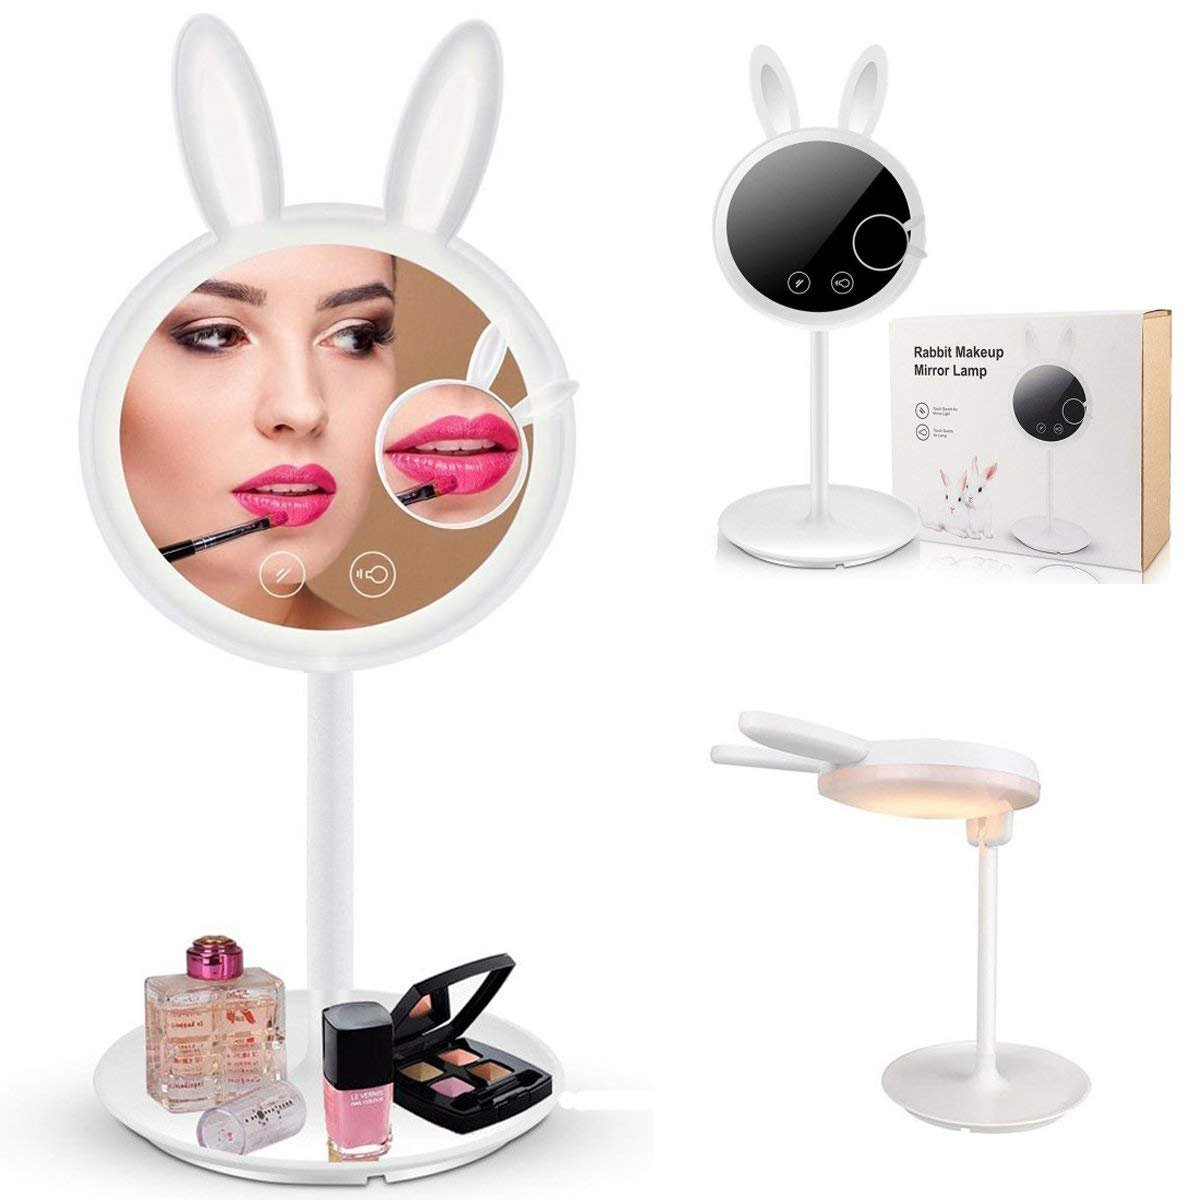 Double-Sided Lighted Makeup Mirror - Rabbit Vanity Mirror 6.7-inch Led Round Tabletop Cosmetic Mirror,7X Magnification,Touch Screen and USB Cable,16.5-inch Height